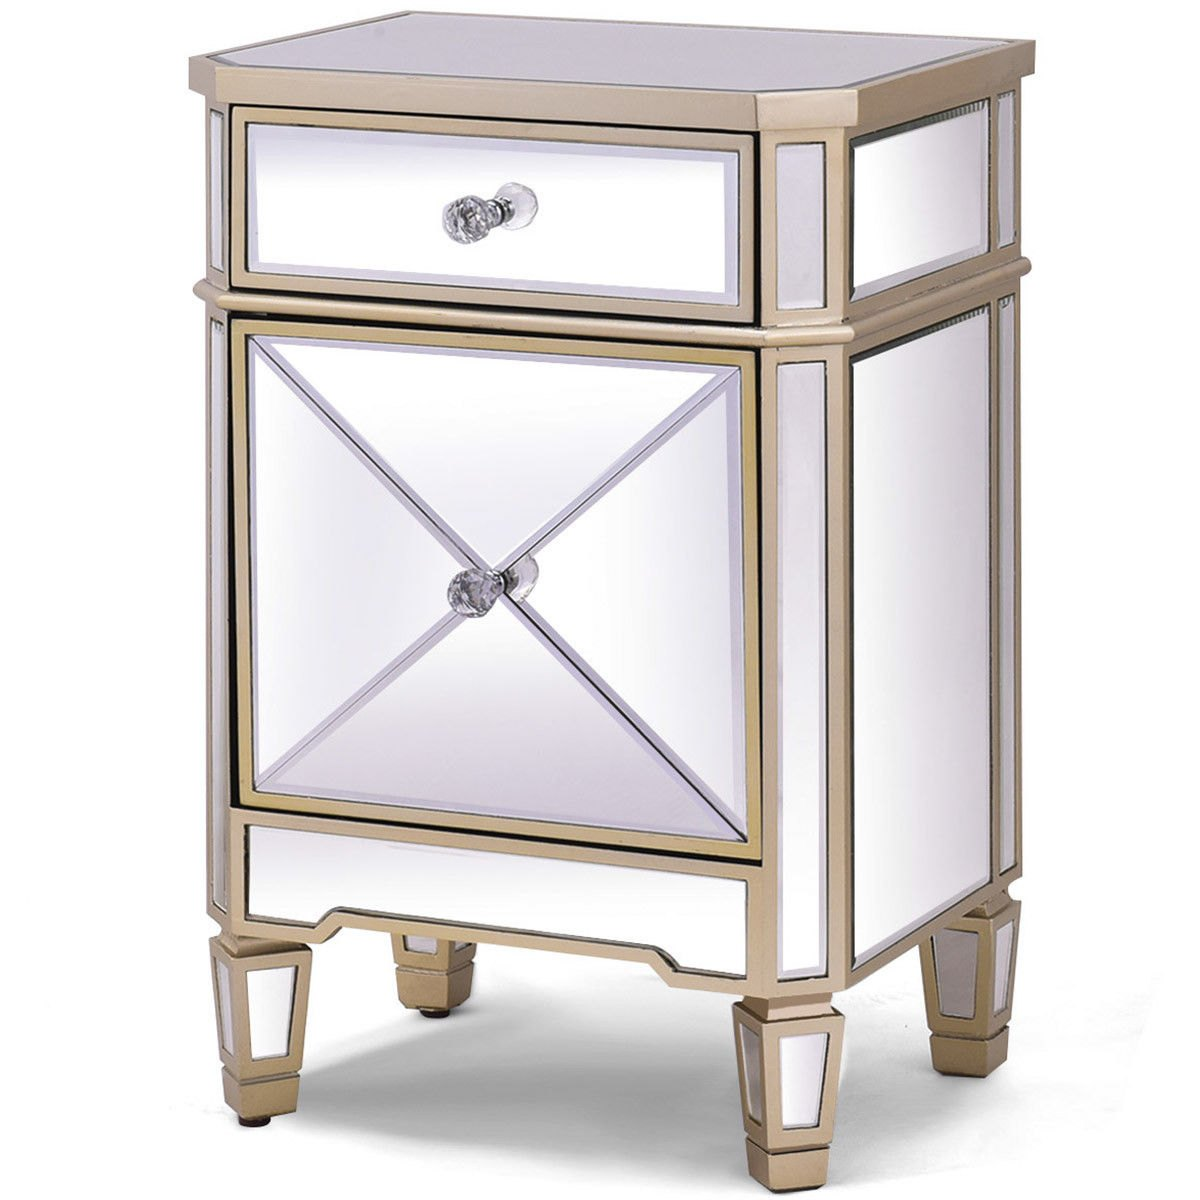 way modern mirrored nightstand storage accent cabinet table chest drawer bunnings outdoor settings narrow side small concrete home interior accessories patio cushions beverage tub